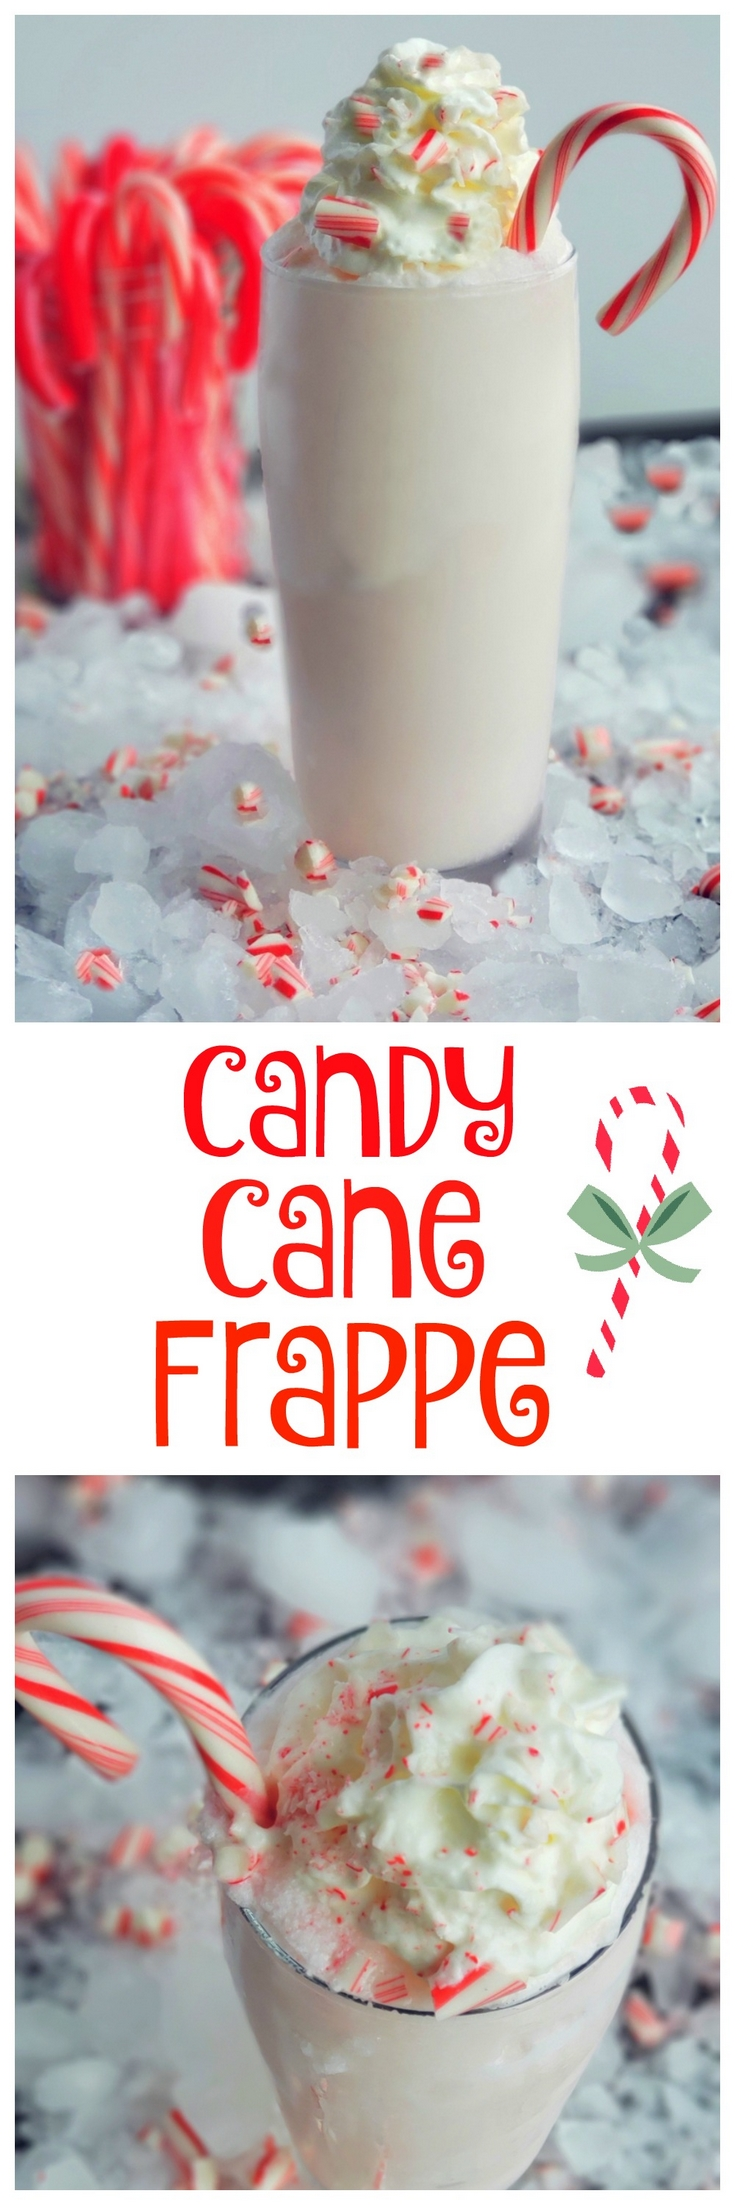 Treat yourself to a Candy Cane Frappe this holiday season or anytime you are craving a delightful peppermint flavored beverage. #noblepig #frappe #candycane via @cmpollak1